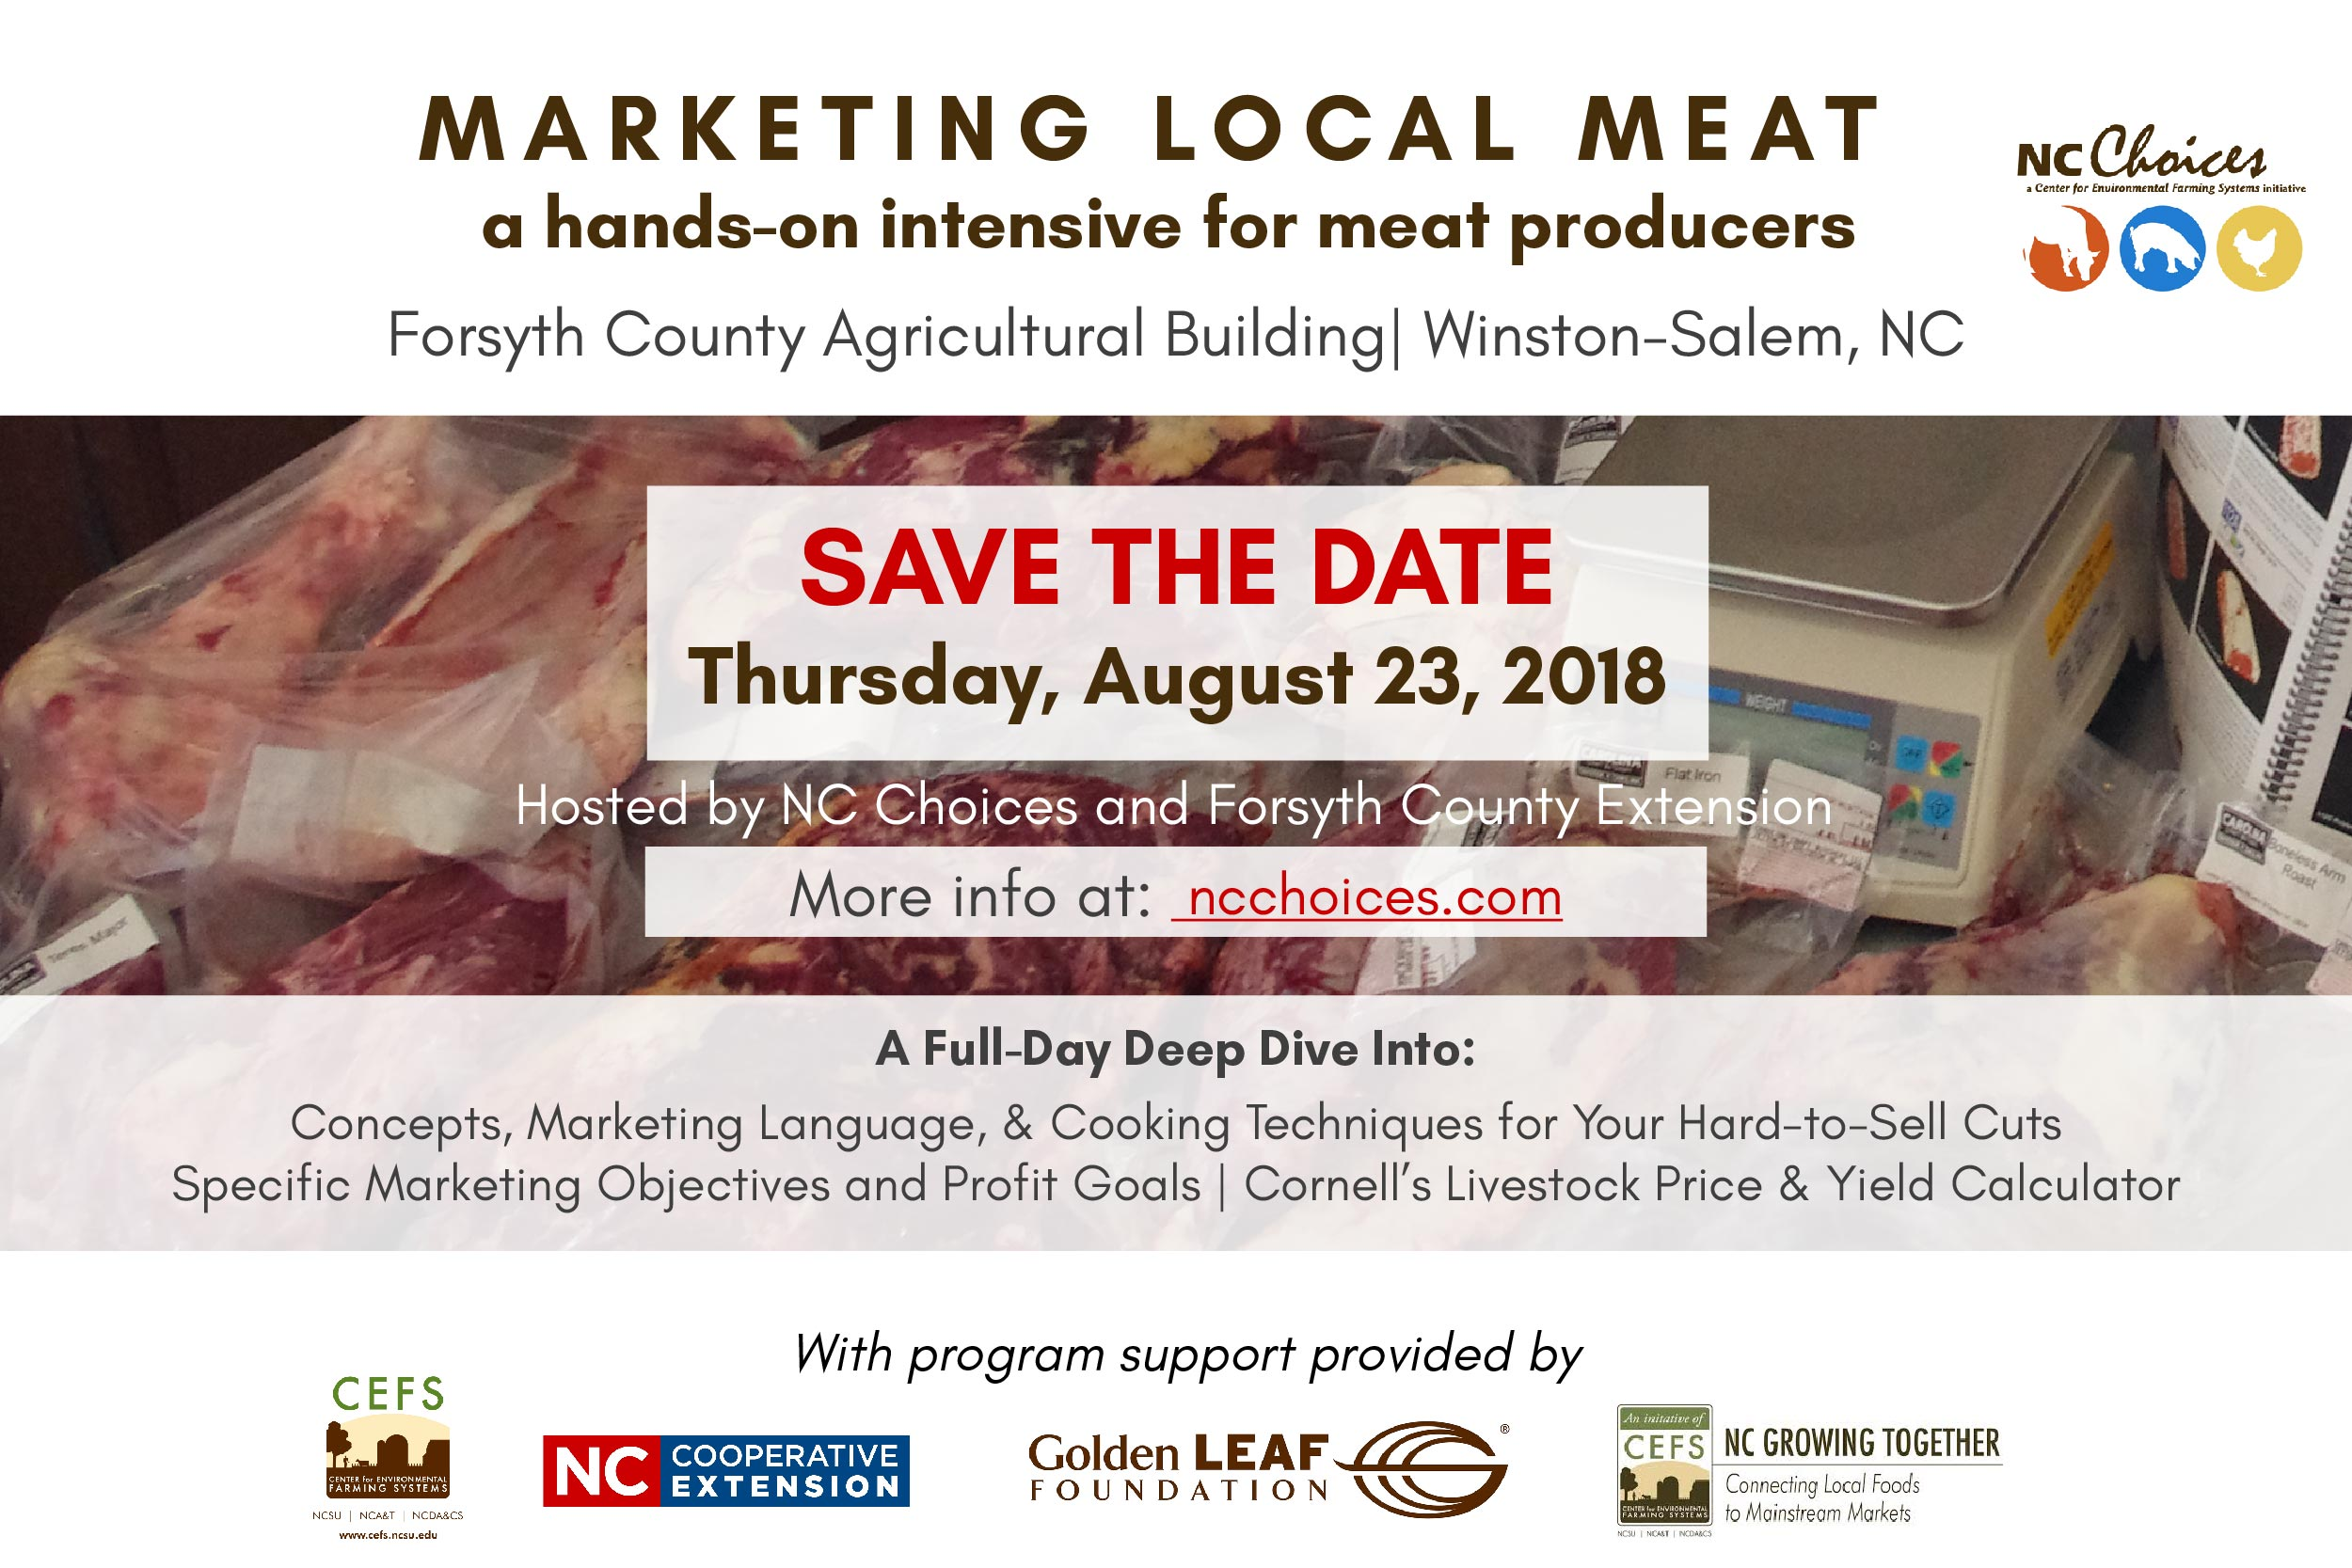 Marketing Local Meat flyer image